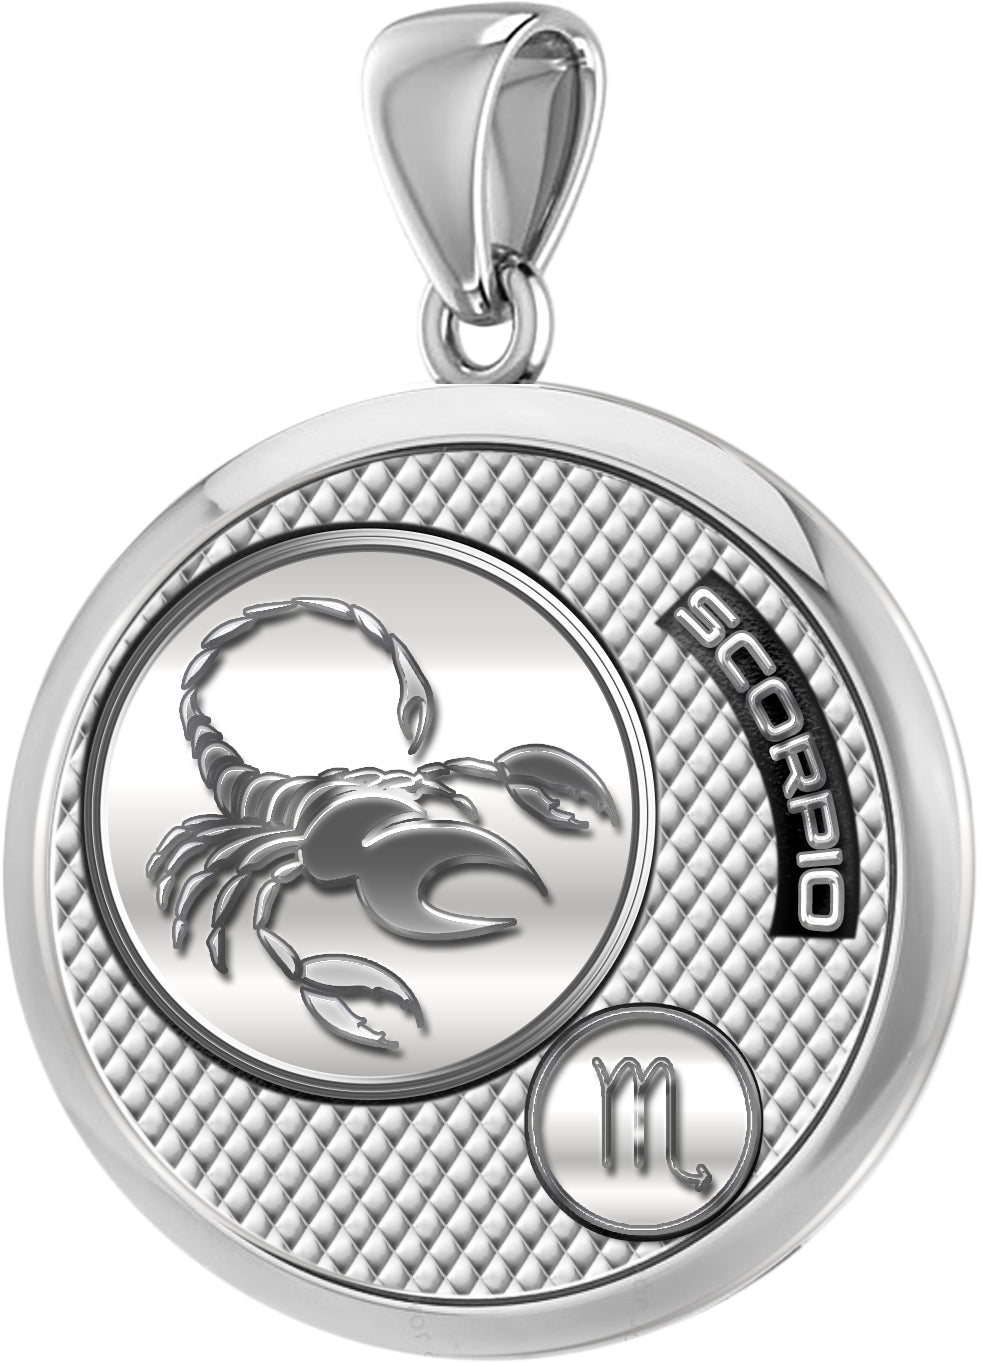 Scorpio Necklace In Polished Finish - Pendant Only